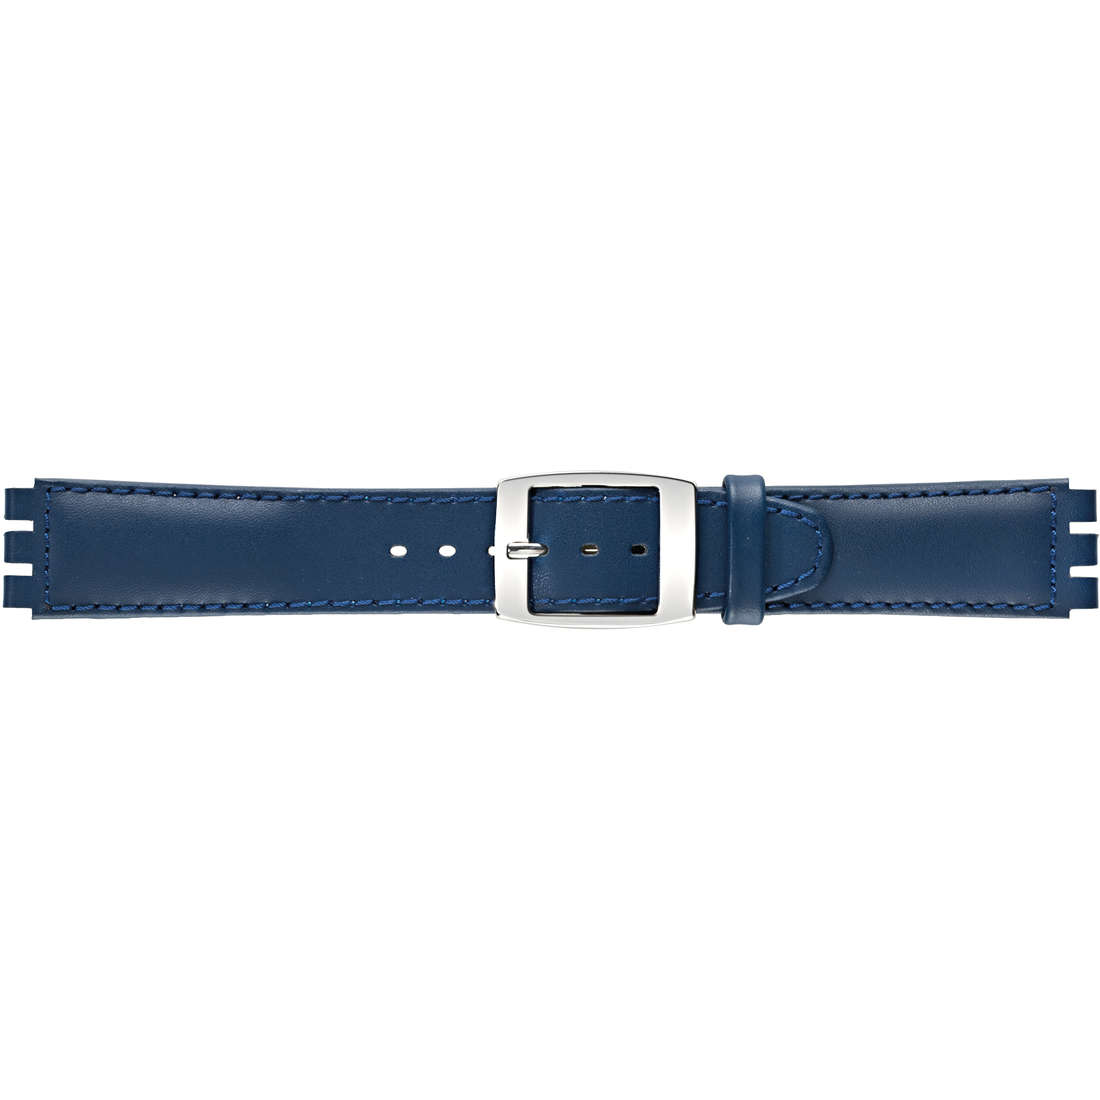 watch watch bands watch straps man Morellato Swatch A01U2740640758MO17